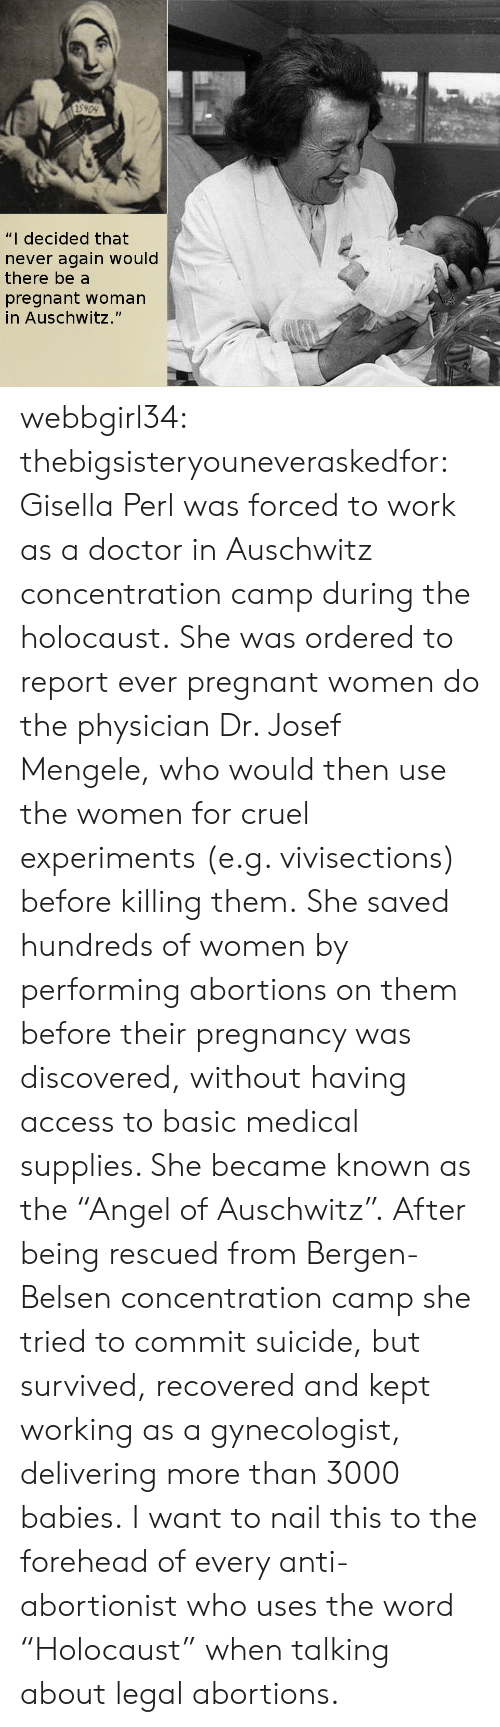 "Holocaust: 5909  ""I decided that  never again would  there be a  pregnant woman  in Auschwitz."" webbgirl34:  thebigsisteryouneveraskedfor:  Gisella Perl was forced to work as a doctor in Auschwitz concentration camp during the holocaust. She was ordered to report ever pregnant women do the physician Dr. Josef Mengele, who would then use the women for cruel experiments (e.g. vivisections) before killing them. She saved hundreds of women by performing abortions on them before their pregnancy was discovered, without having access to basic medical supplies. She became known as the ""Angel of Auschwitz"". After being rescued from Bergen-Belsen concentration camp she tried to commit suicide, but survived, recovered and kept working as a gynecologist, delivering more than 3000 babies.  I want to nail this to the forehead of every anti-abortionist who uses the word ""Holocaust"" when talking about legal abortions."